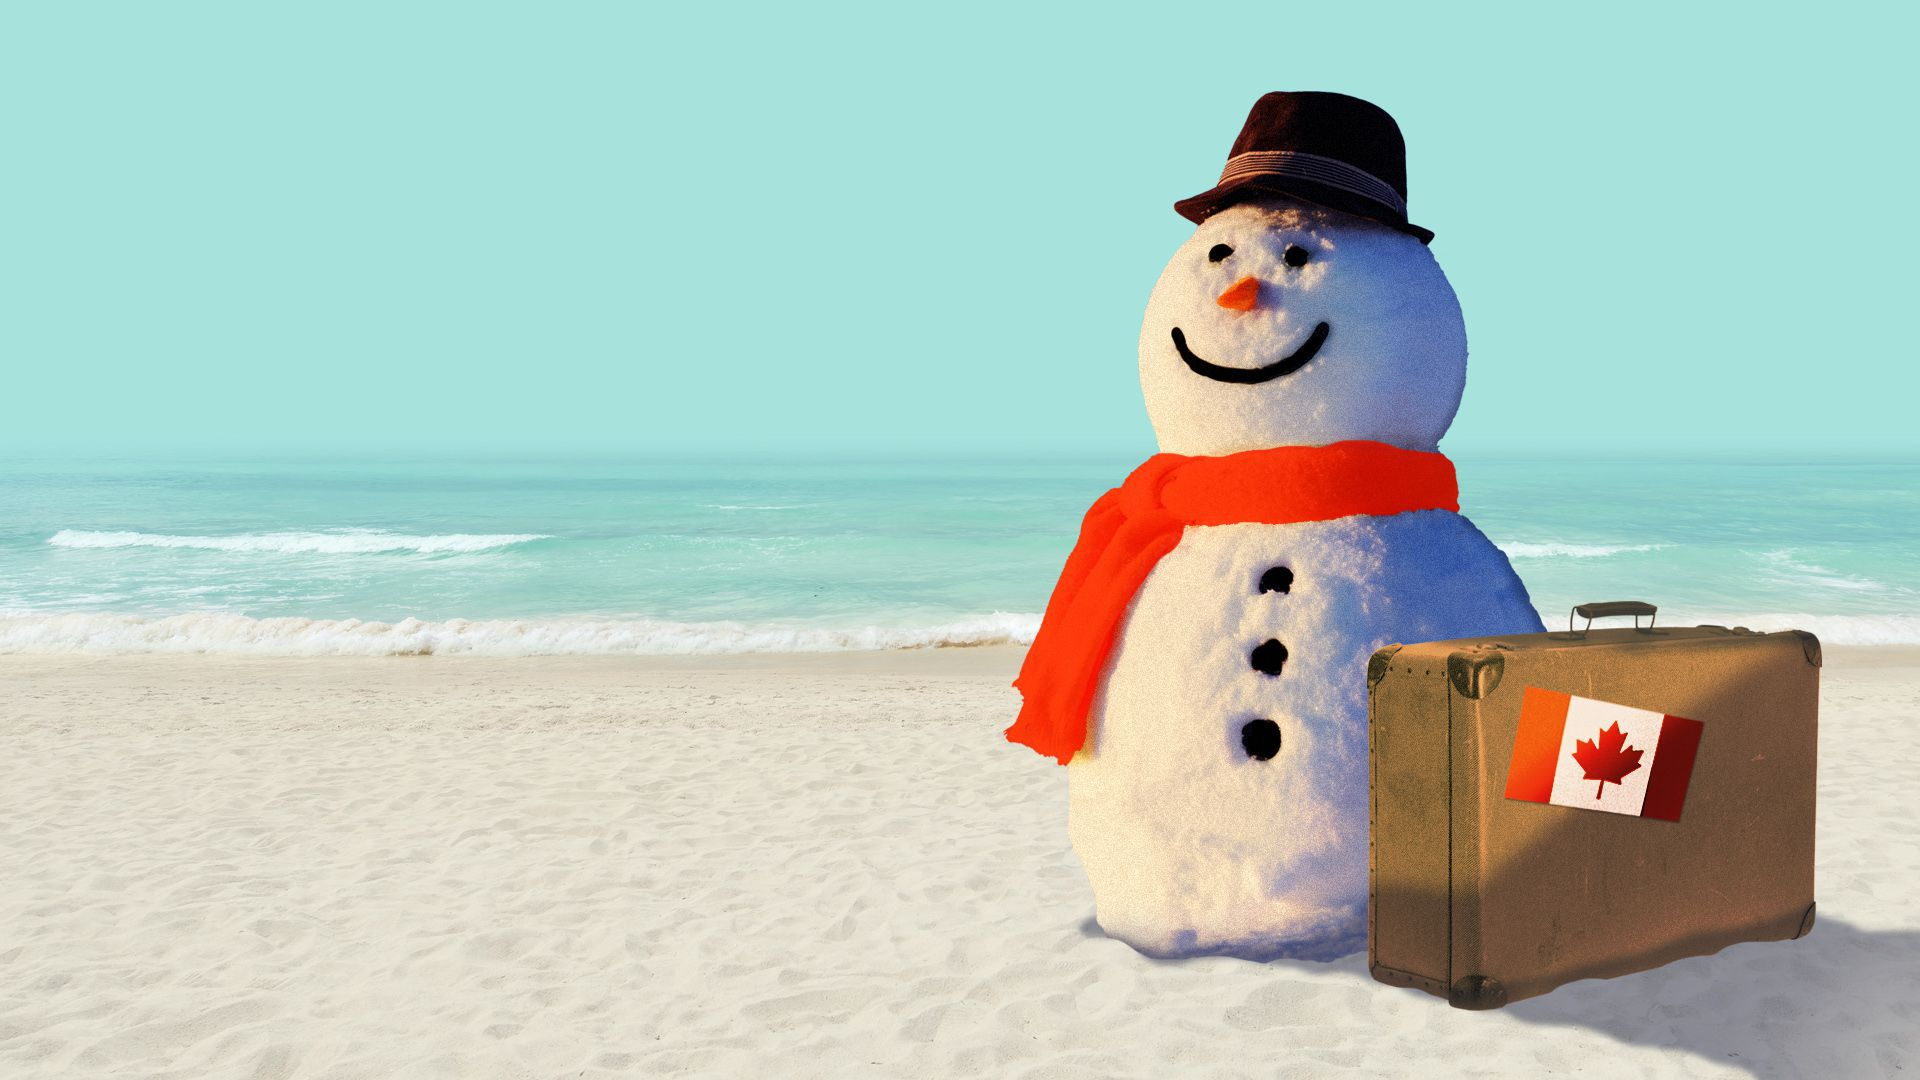 Illustration of a snowman next to a suitcase with a Canadian flag stamp on it on a beach